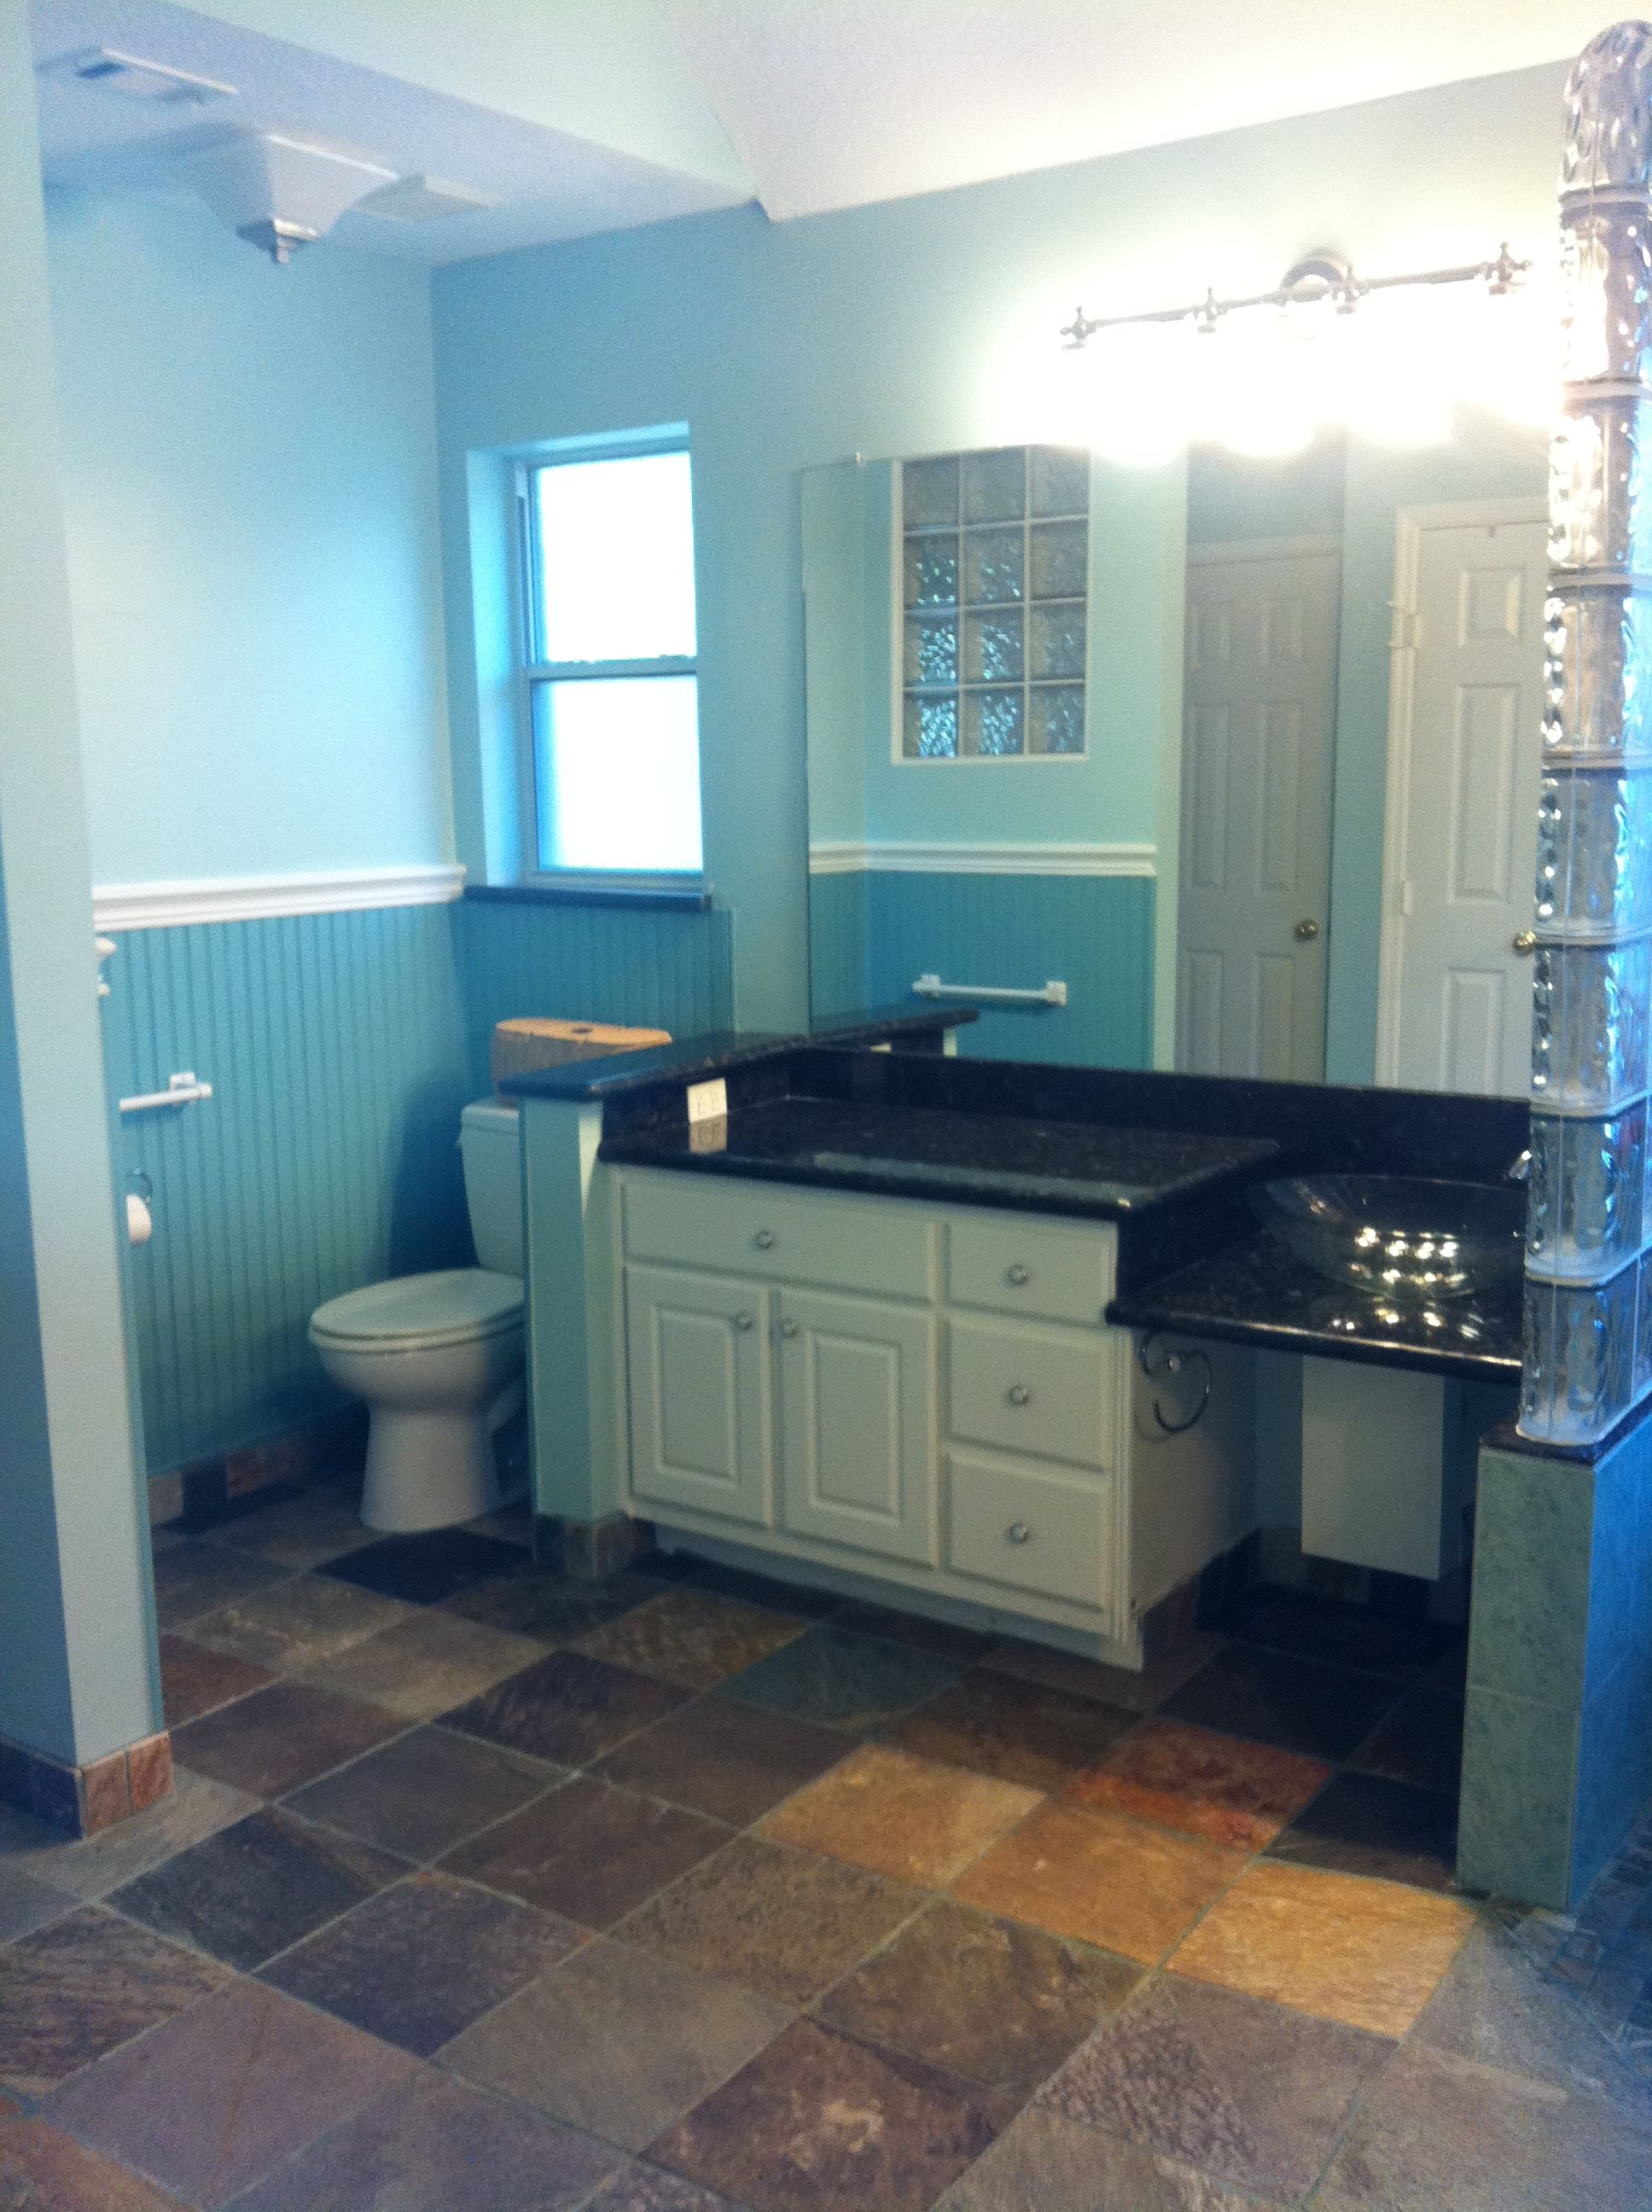 We opened the vanity base and lowered the counter to accommodate our